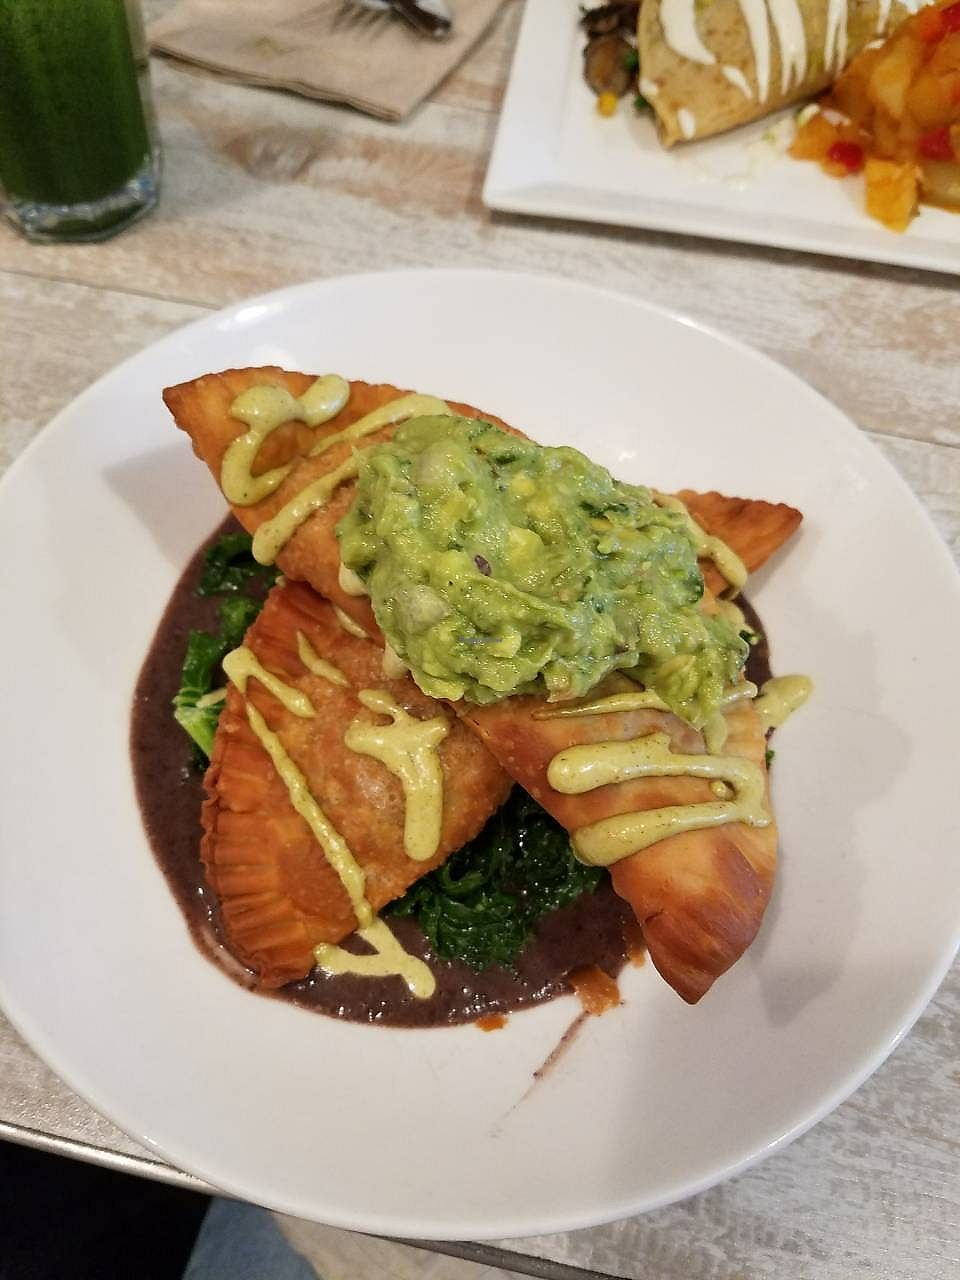 """Photo of Candle Cafe West  by <a href=""""/members/profile/Katyathevegan"""">Katyathevegan</a> <br/>Empanadas-- Seriously amazing! <br/> October 16, 2017  - <a href='/contact/abuse/image/31715/315725'>Report</a>"""